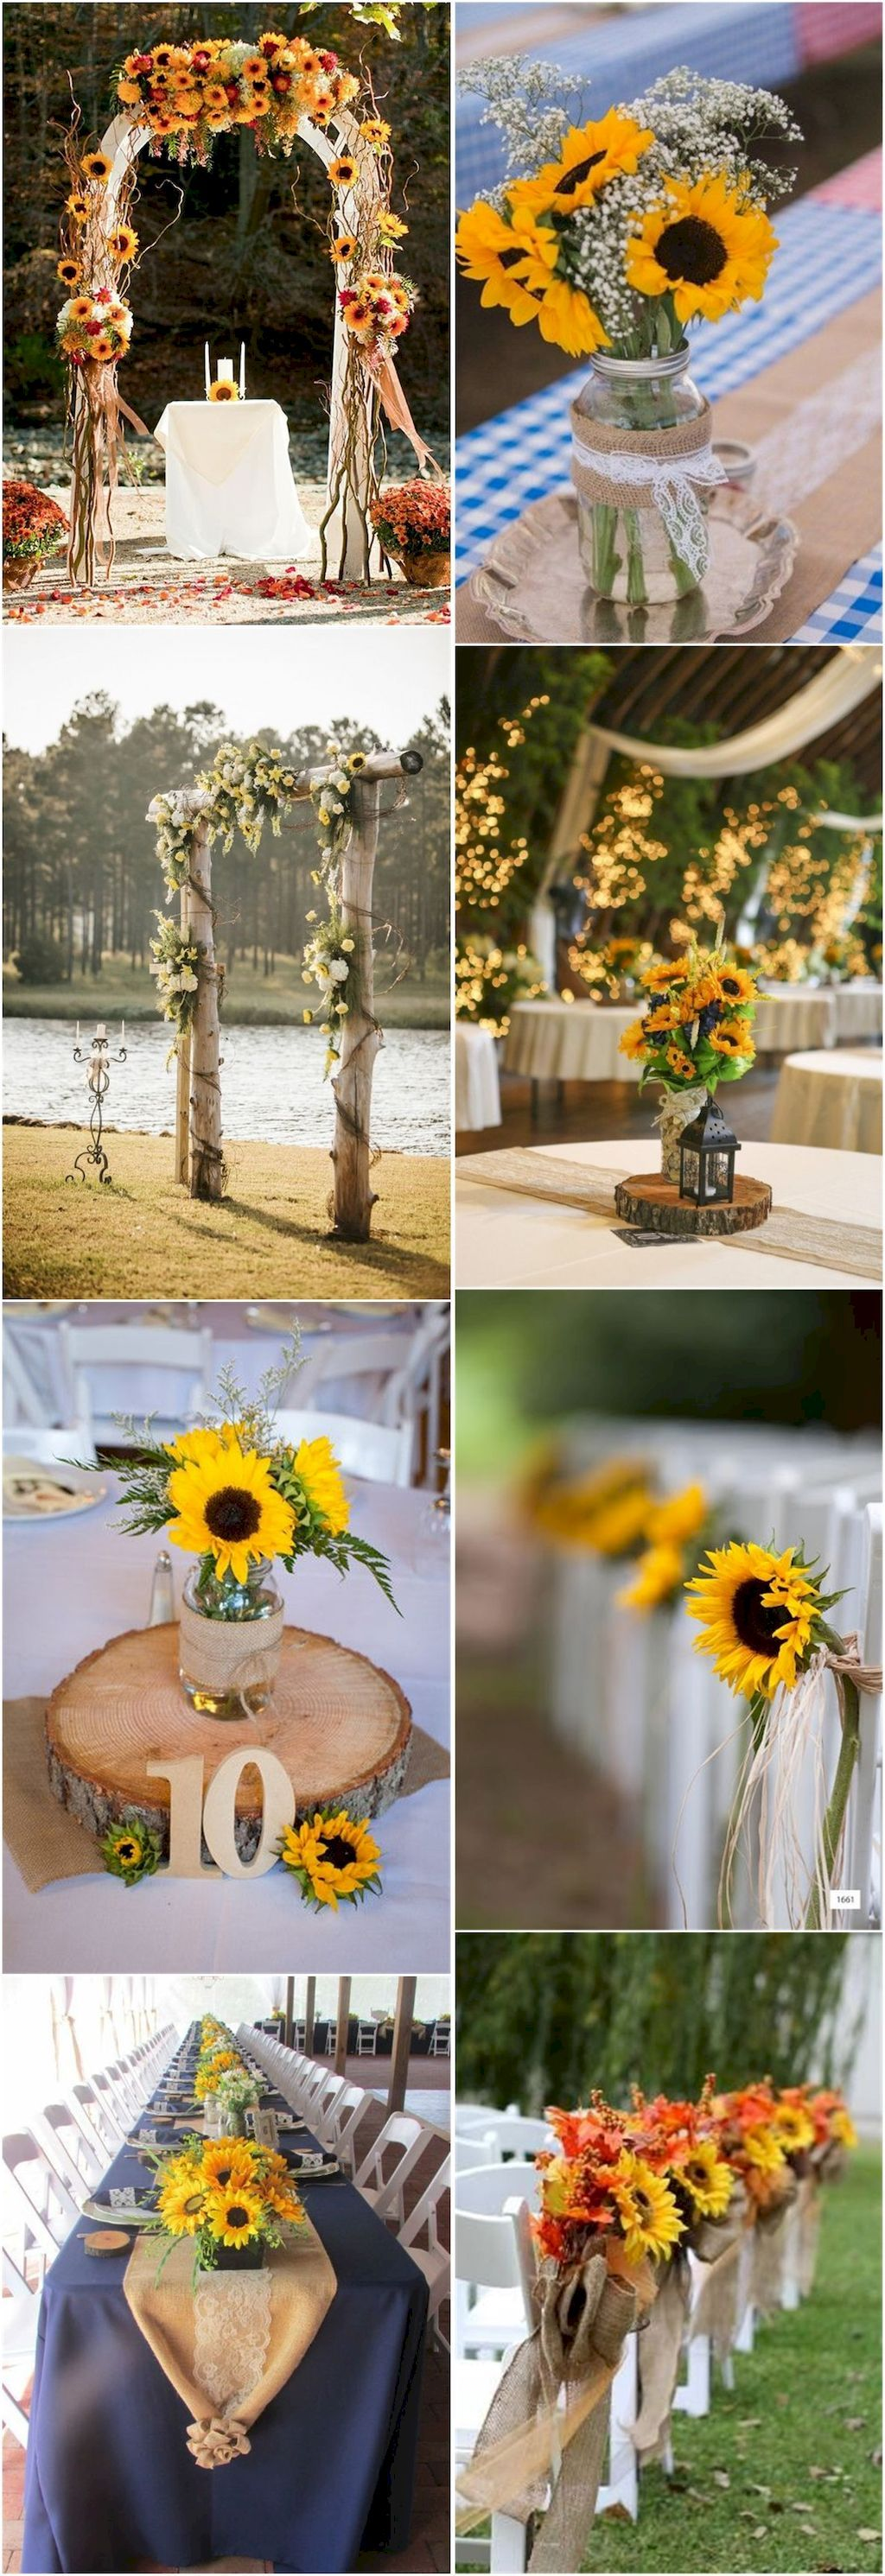 Adorable 101+ Country Rustic Sunflower Wedding Theme Ideas